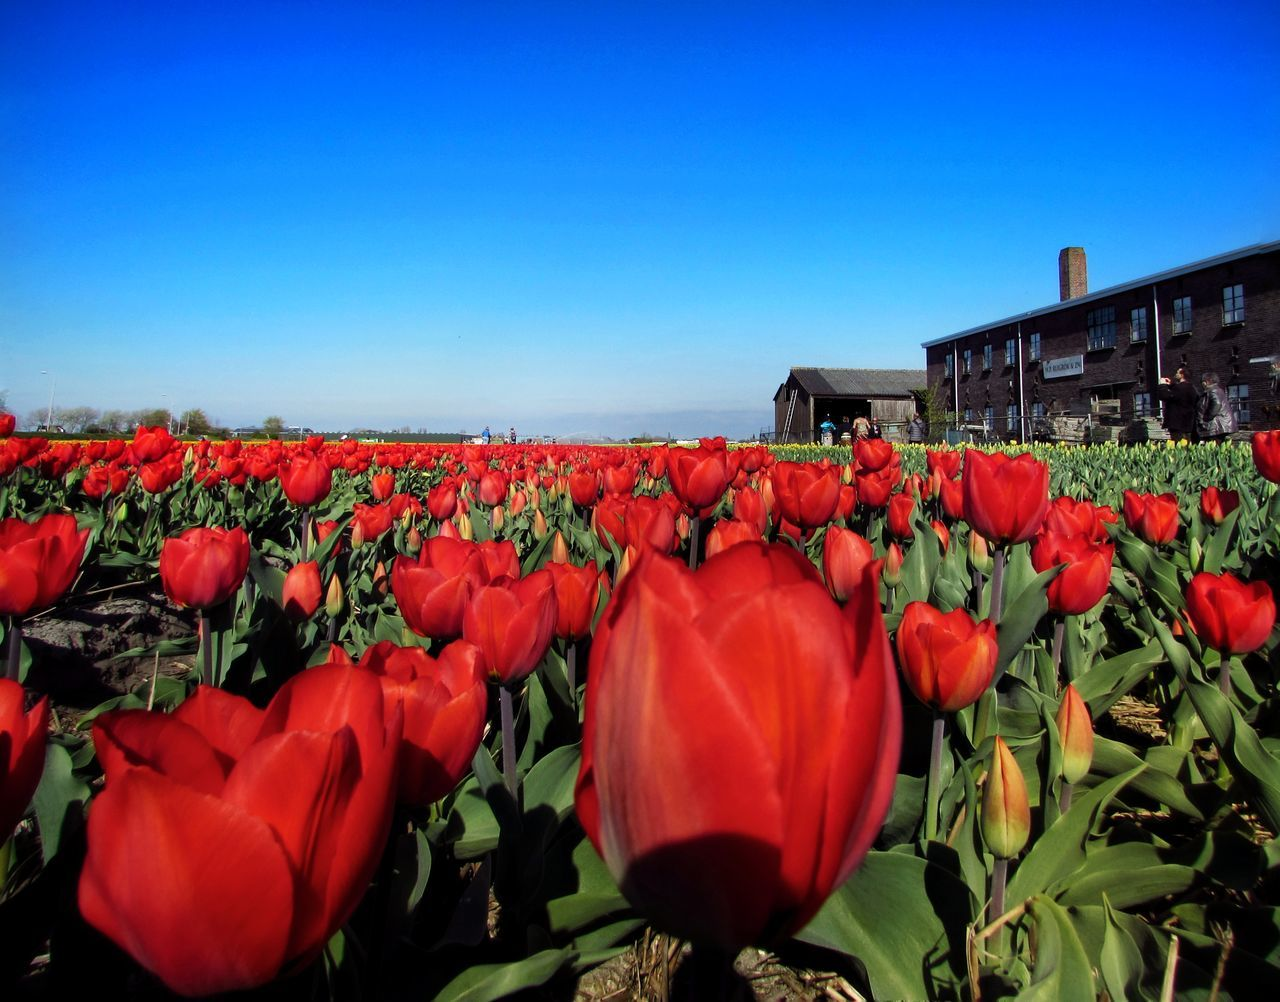 flower, beauty in nature, nature, fragility, red, growth, petal, plant, freshness, outdoors, clear sky, day, flower head, no people, field, blooming, springtime, tulip, blue, scenics, sky